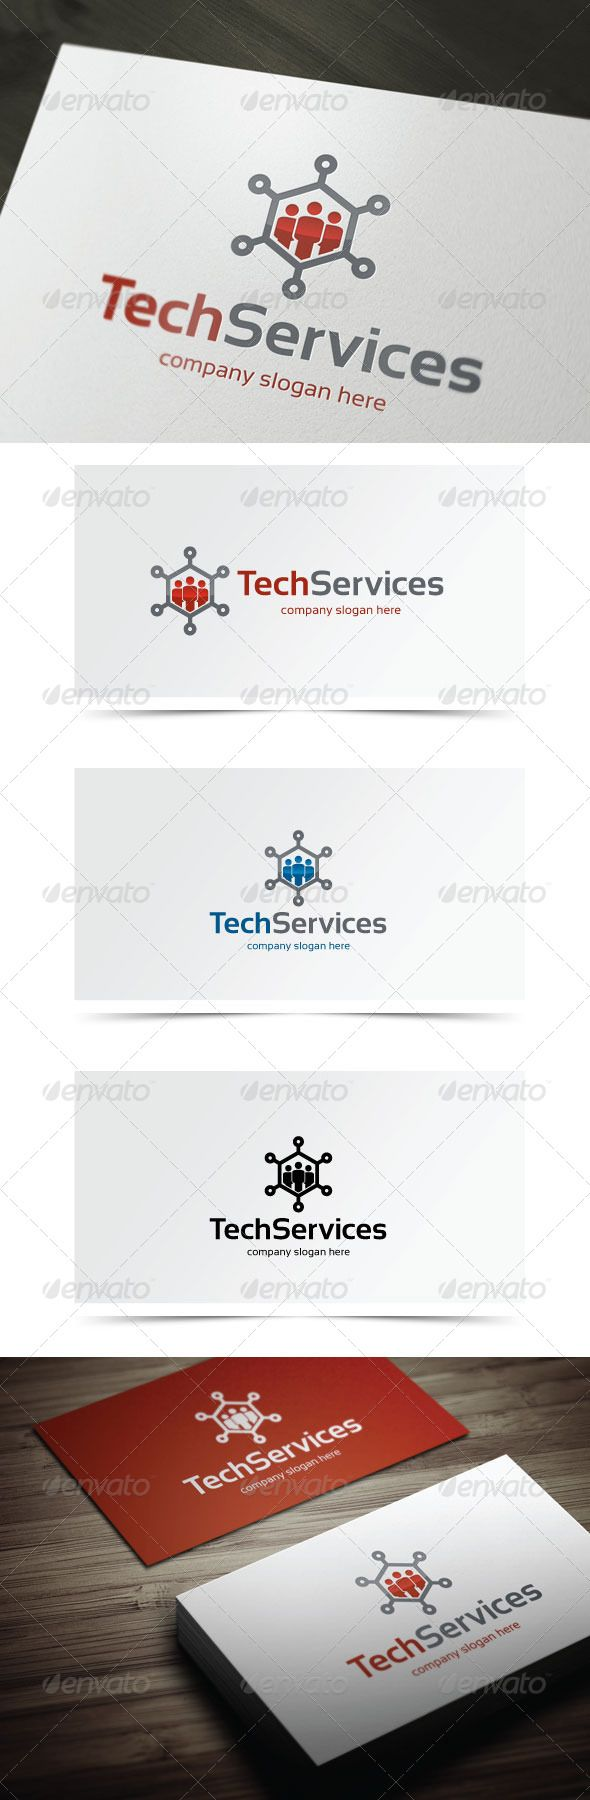 Tech Services — Vector EPS #application #computer • Available here → https://graphicriver.net/item/tech-services/5853602?ref=pxcr